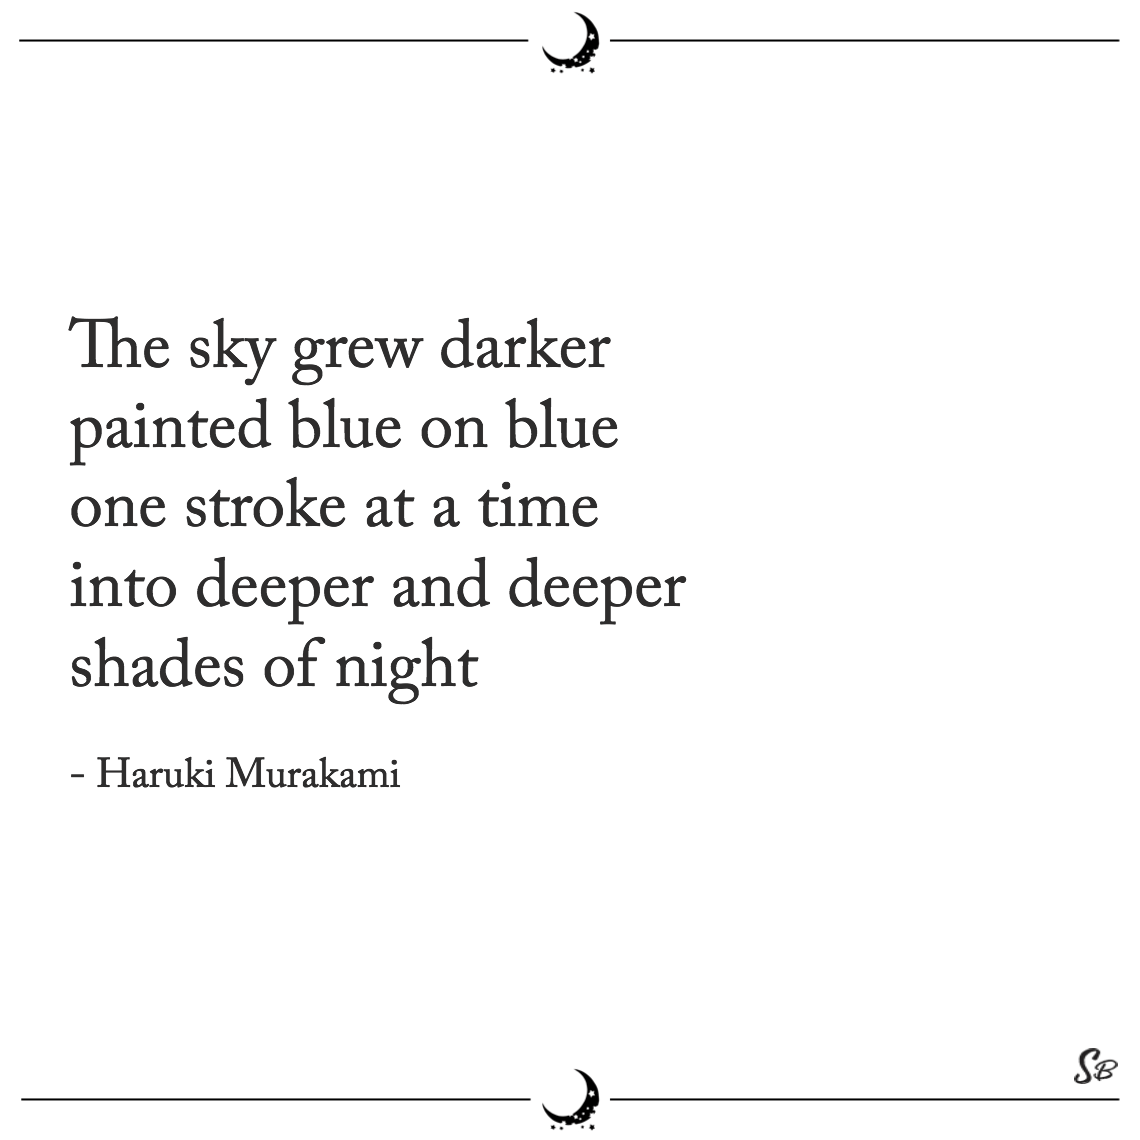 The sky grew darker painted blue on blue one stroke at a time into deeper and deeper shades of night haruki murakami